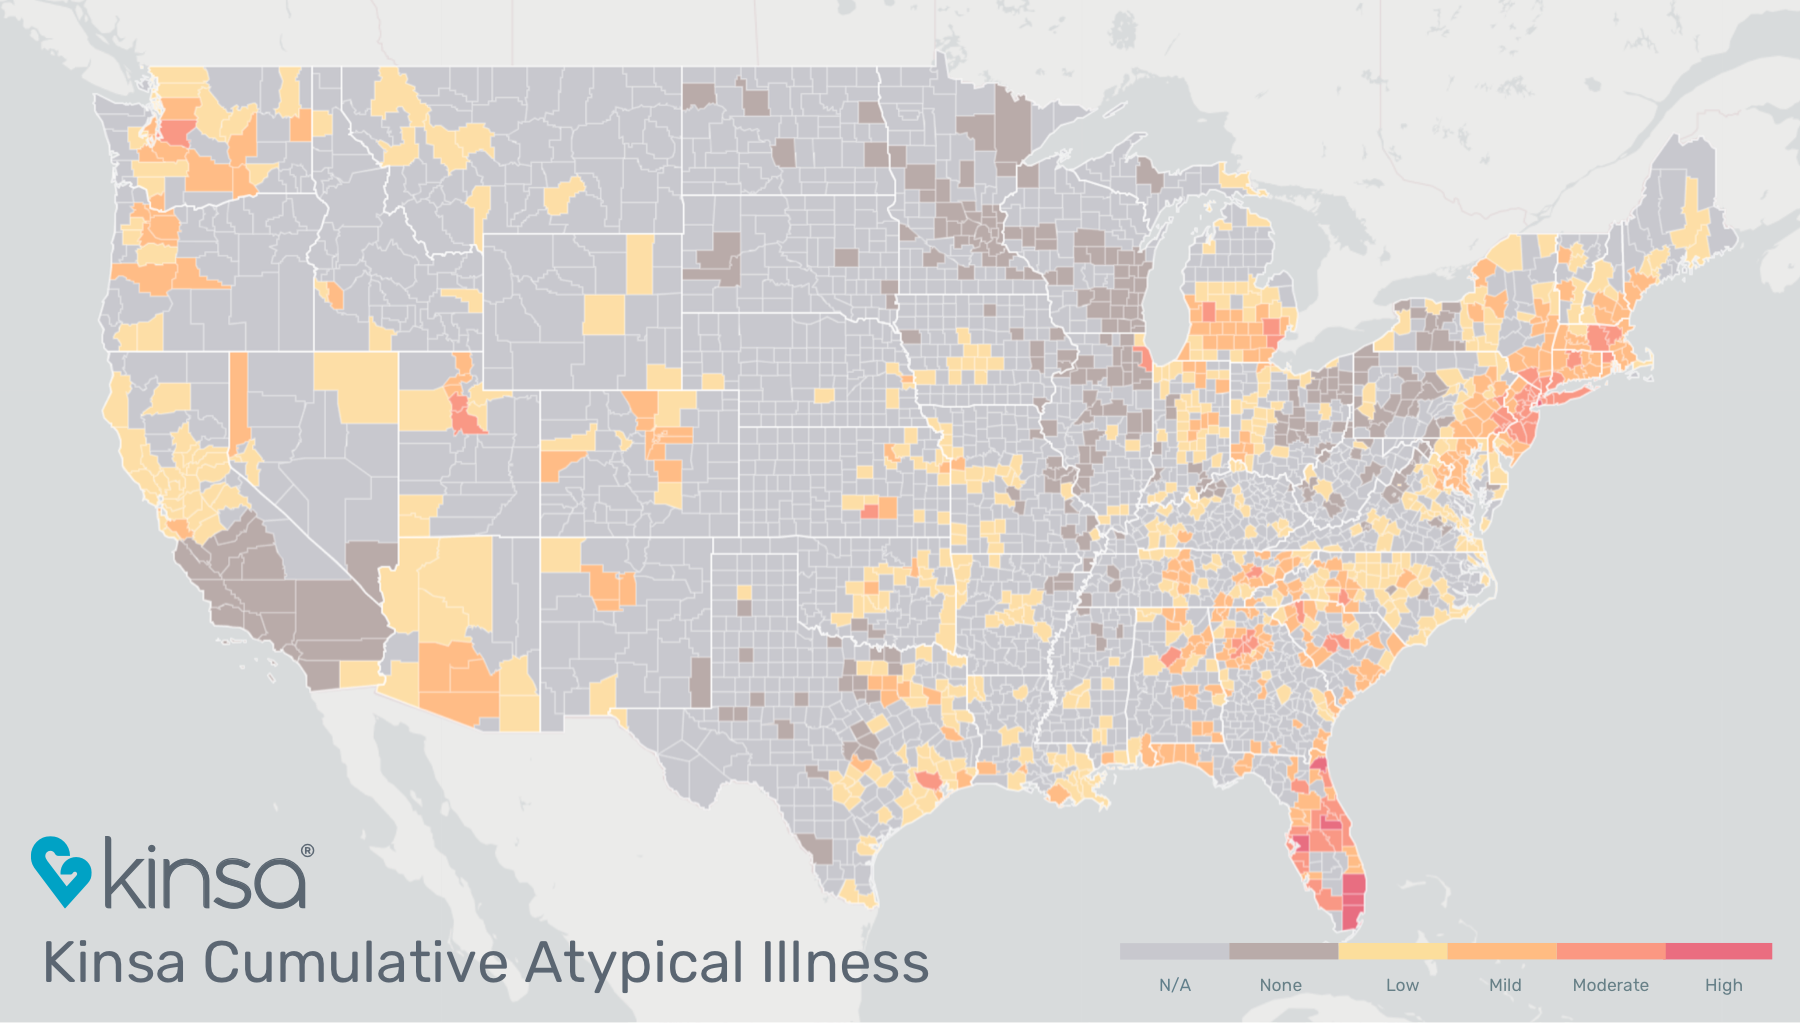 Map showing how much influenza-like illness above the normal expected levels have been detected, in the U.S., since March 1. The map color-codes to show areas with many cases (red), moderate cases (dark orange), mild (light orange) and low (yellow). The m